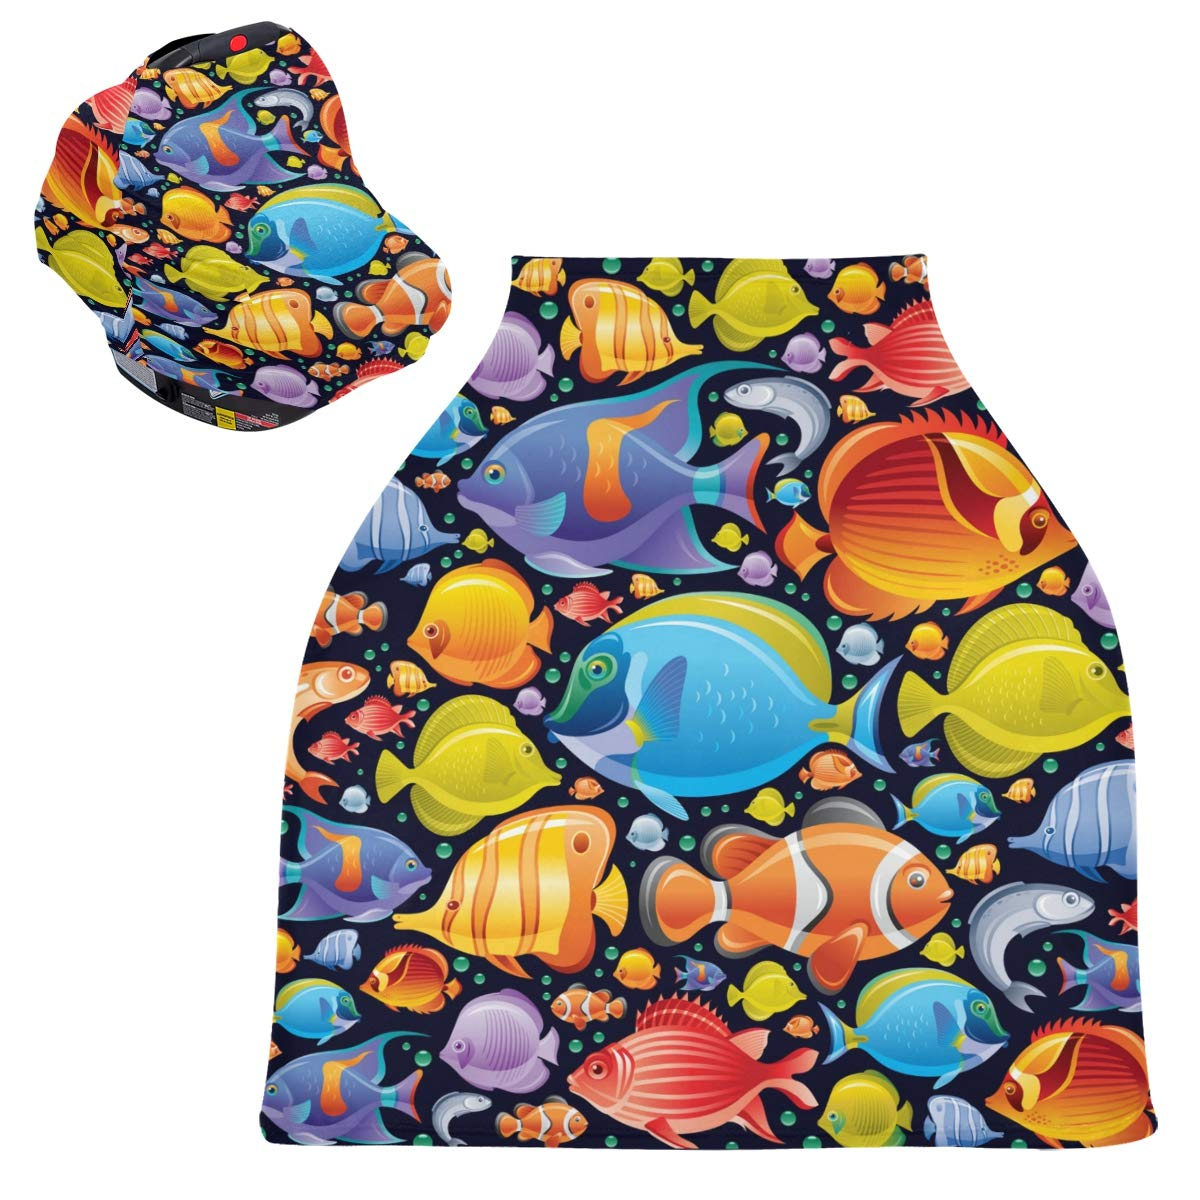 Stretchy Baby Car Seat Canopy - Underwater Diving Animal Tropical Fish Infant Stroller Cover Multi Use Baby Carseat Cover Nursing Cover for Shopping Cart